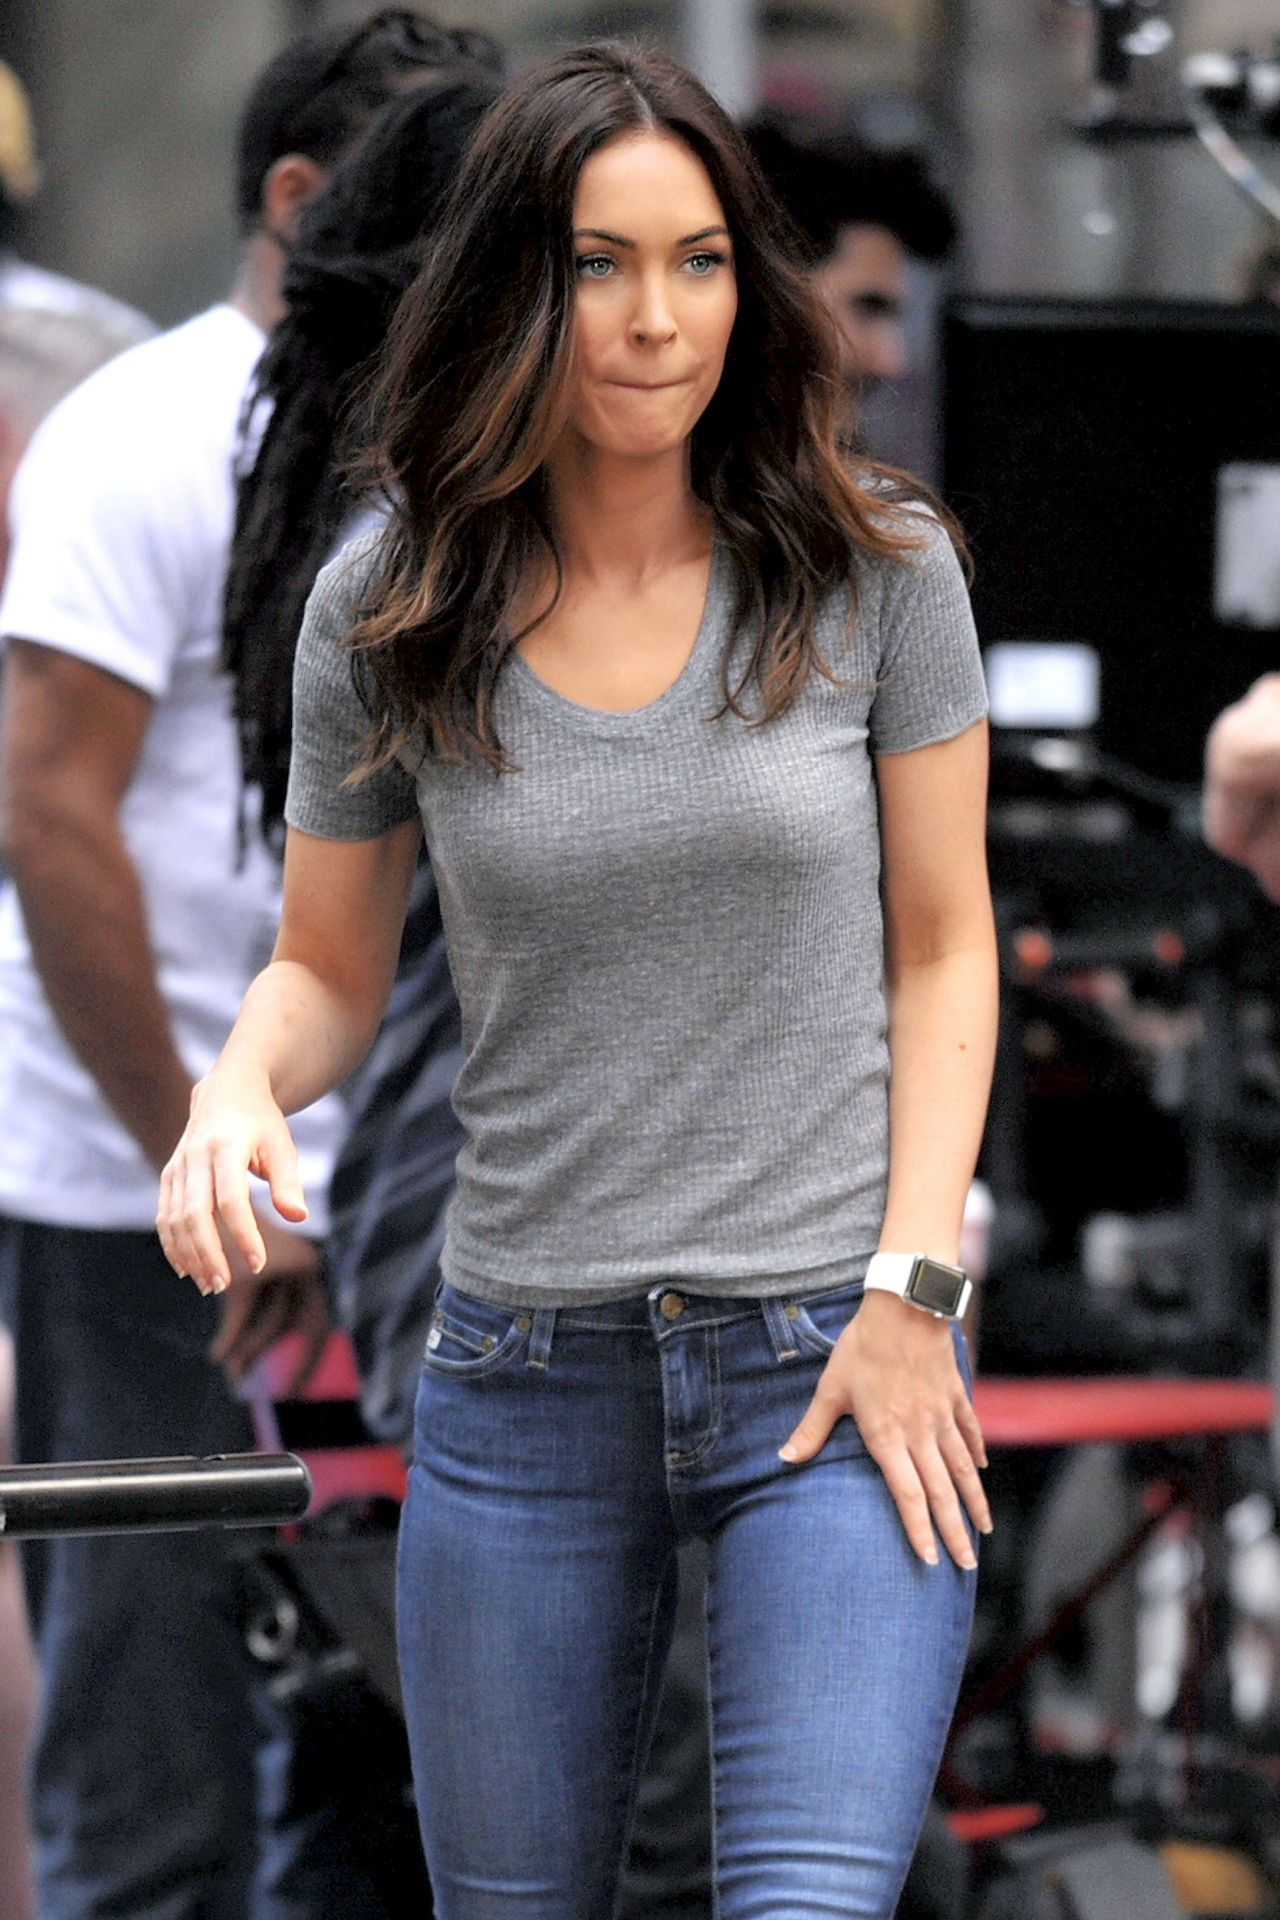 Megan Fox - Teenage Mutant Ninja Turtles 2 Set Photos ... Megan Fox